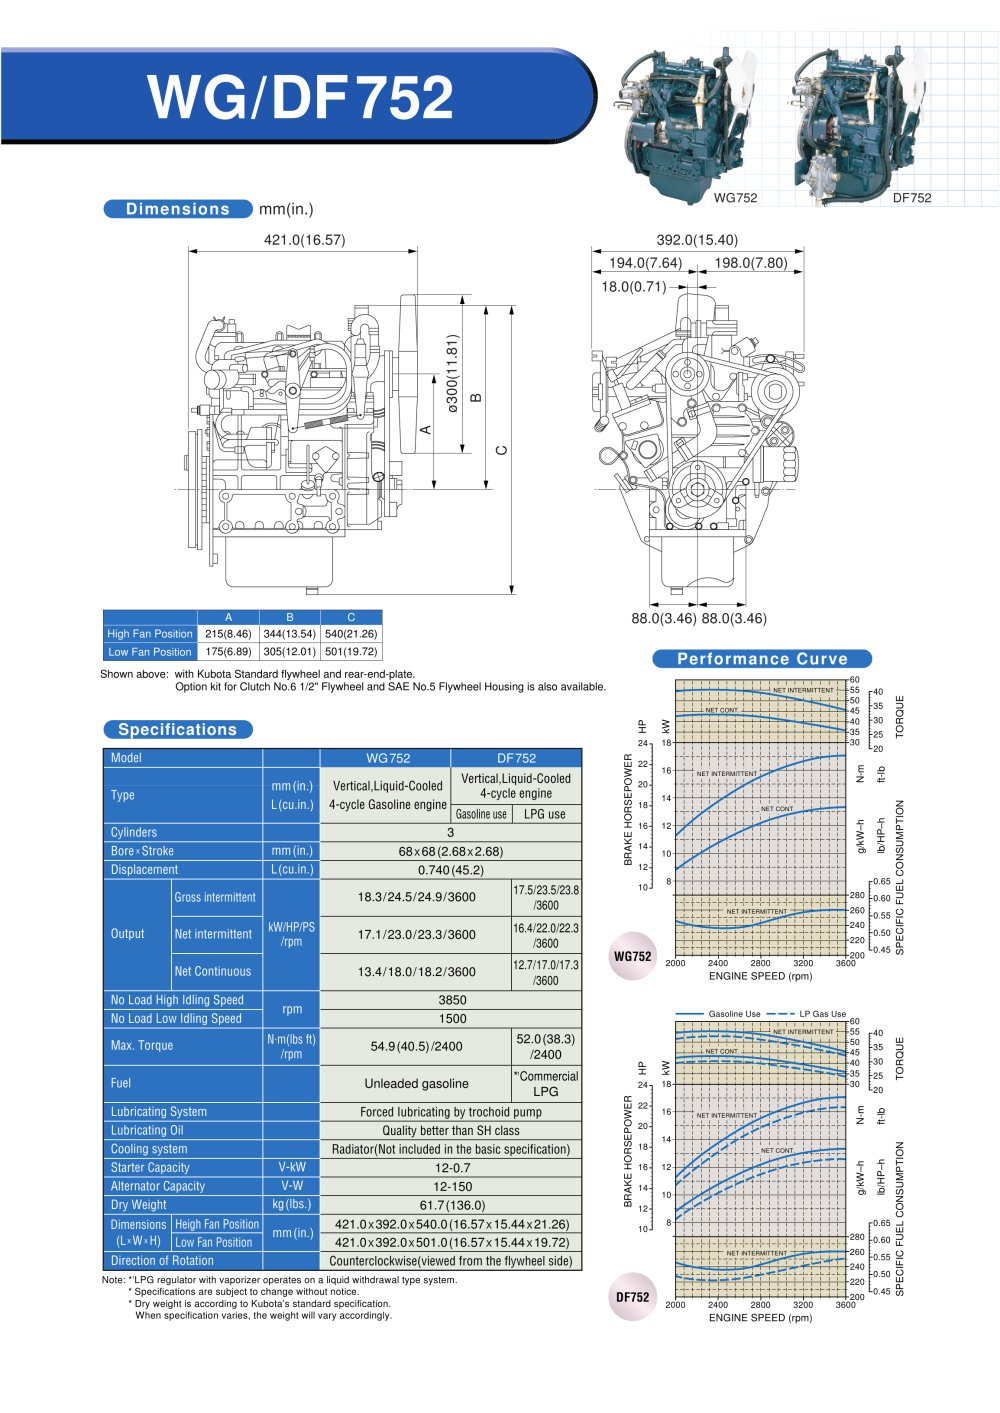 WG/DF 752 - 1 / 1 Pages